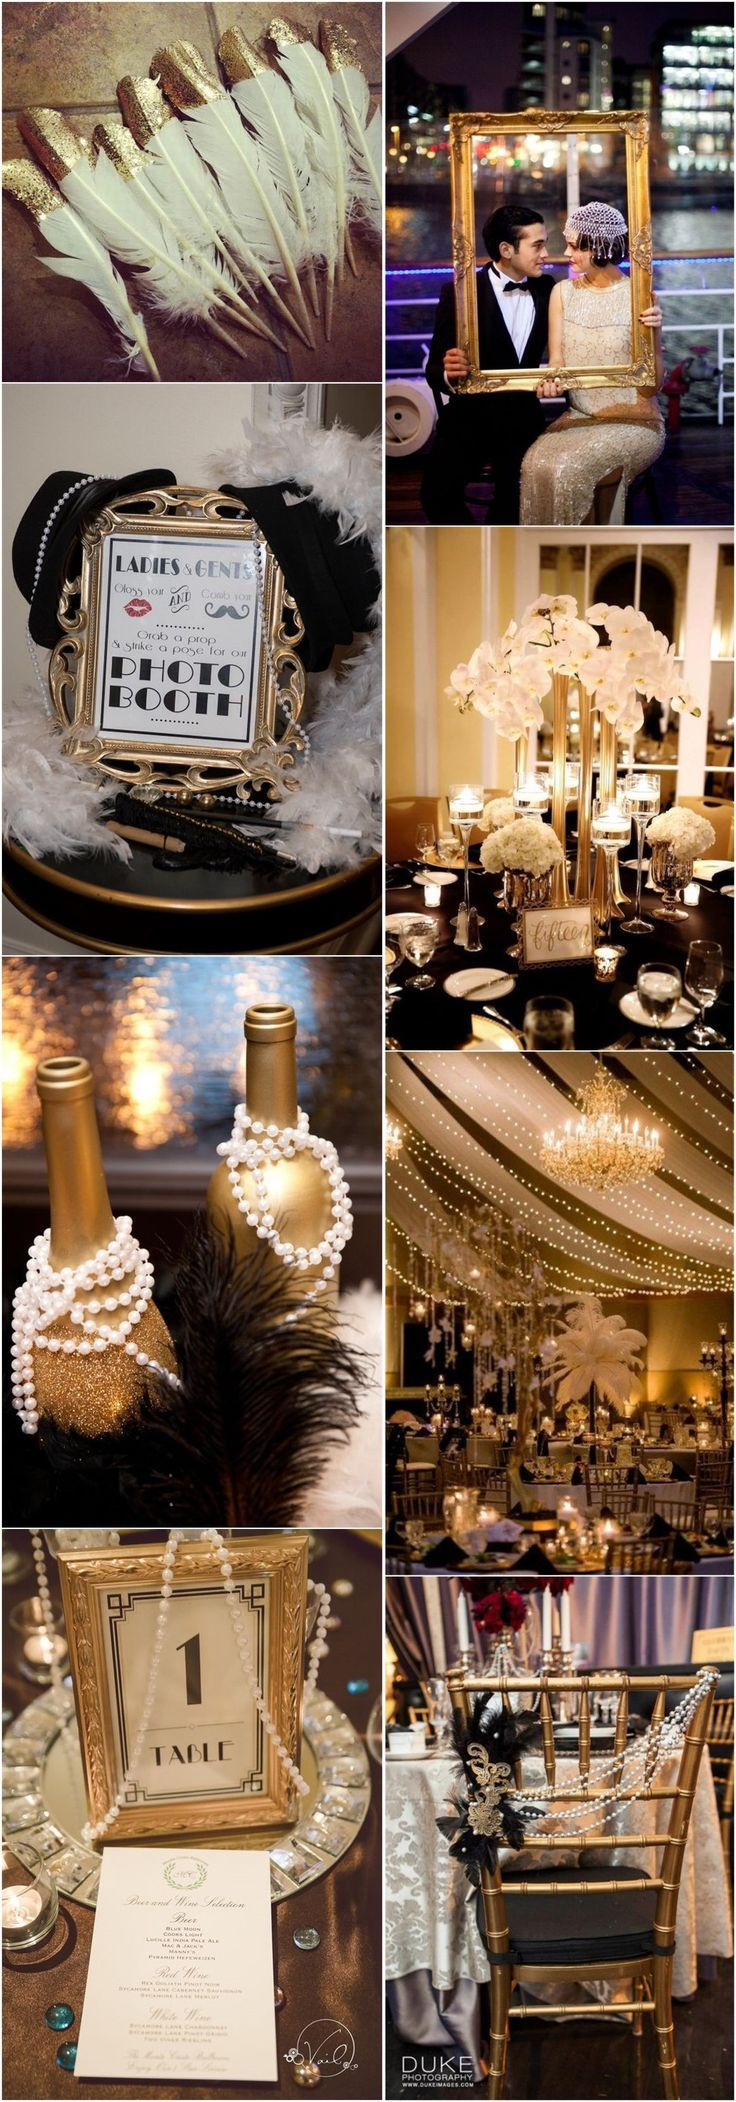 25 Black and Gold Great Gatsby-Inspired Wedding Ideas